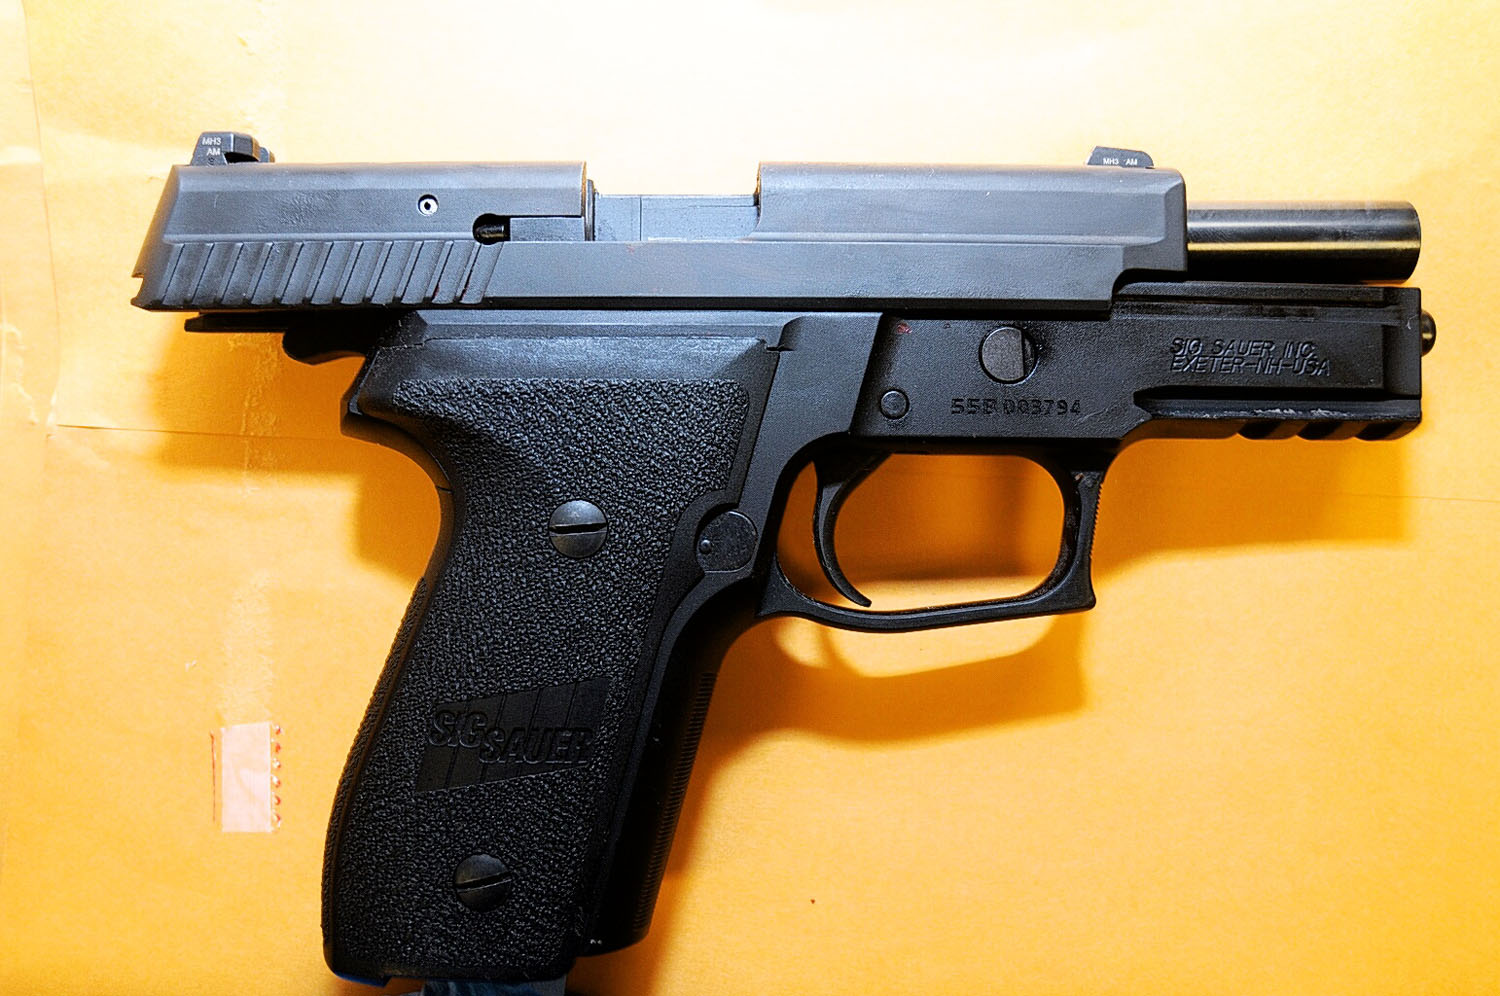 The gun Officer Darren Wilson used when he shot and killed Michael Brown